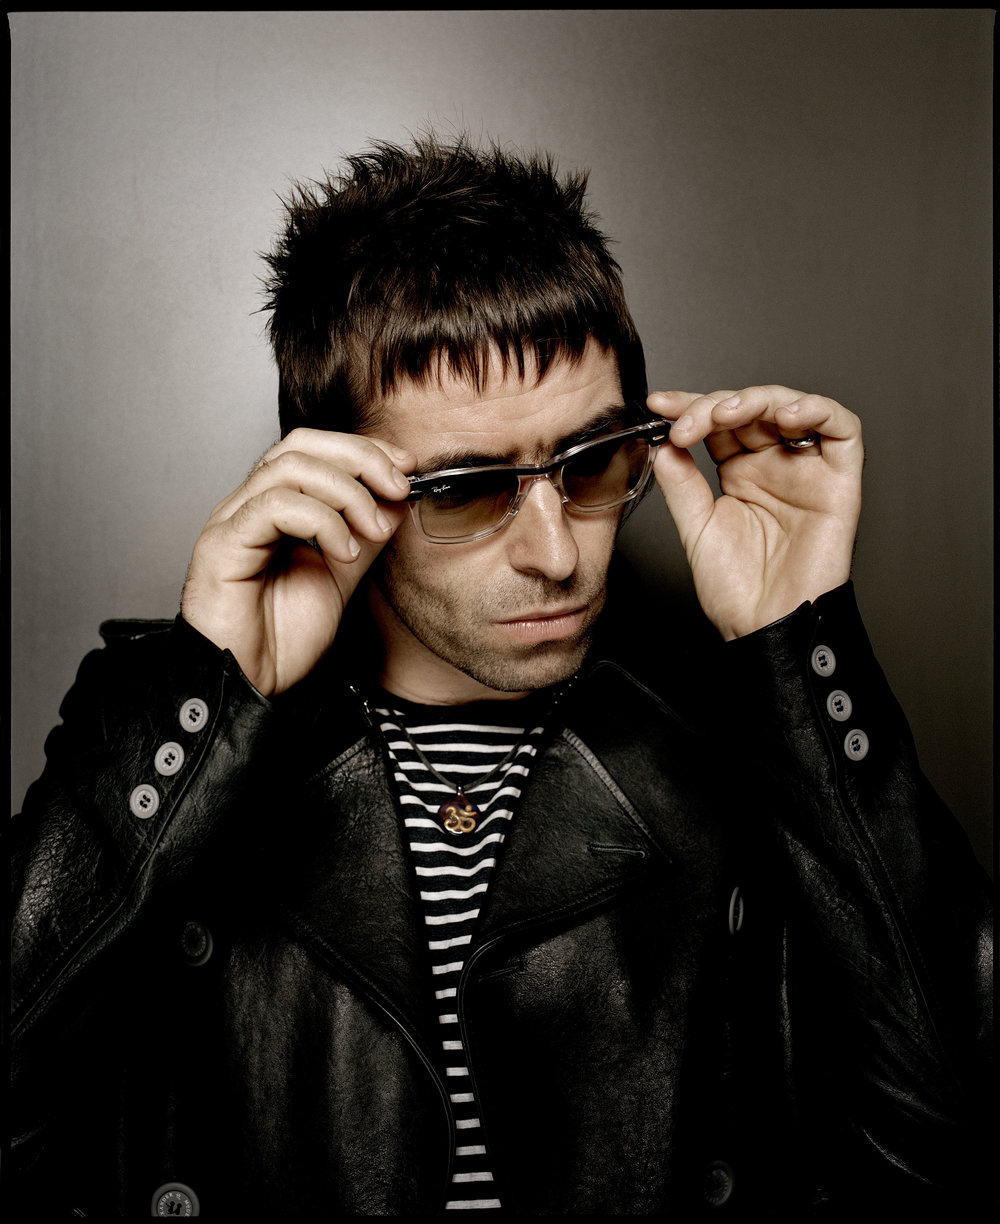 Liam Gallagher / Oasis